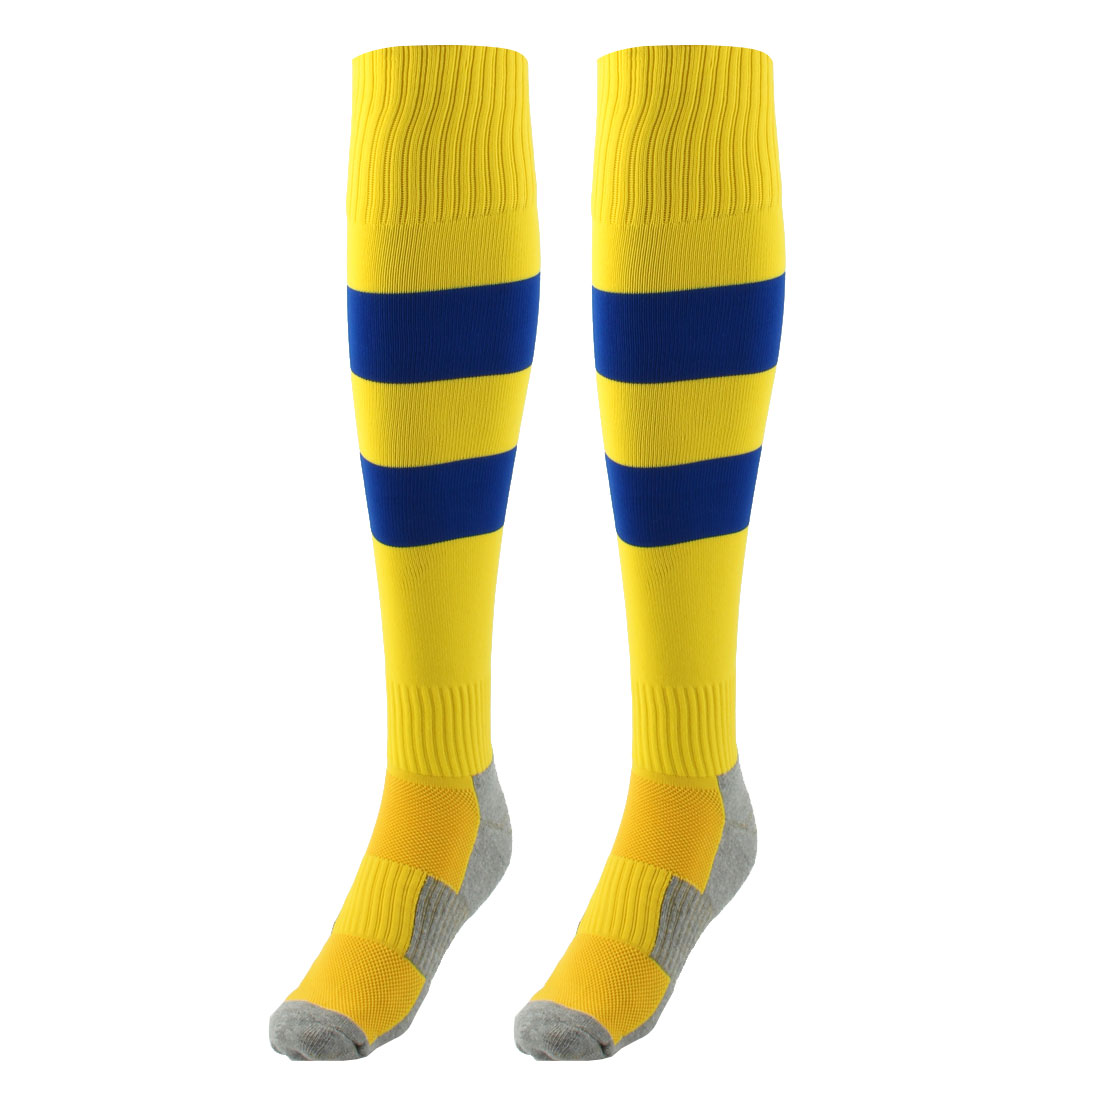 Outdoor Sports Nylon Knee High Style Stretch Baseball Soccer Football Long Socks Stockings Yellow Blue Pair